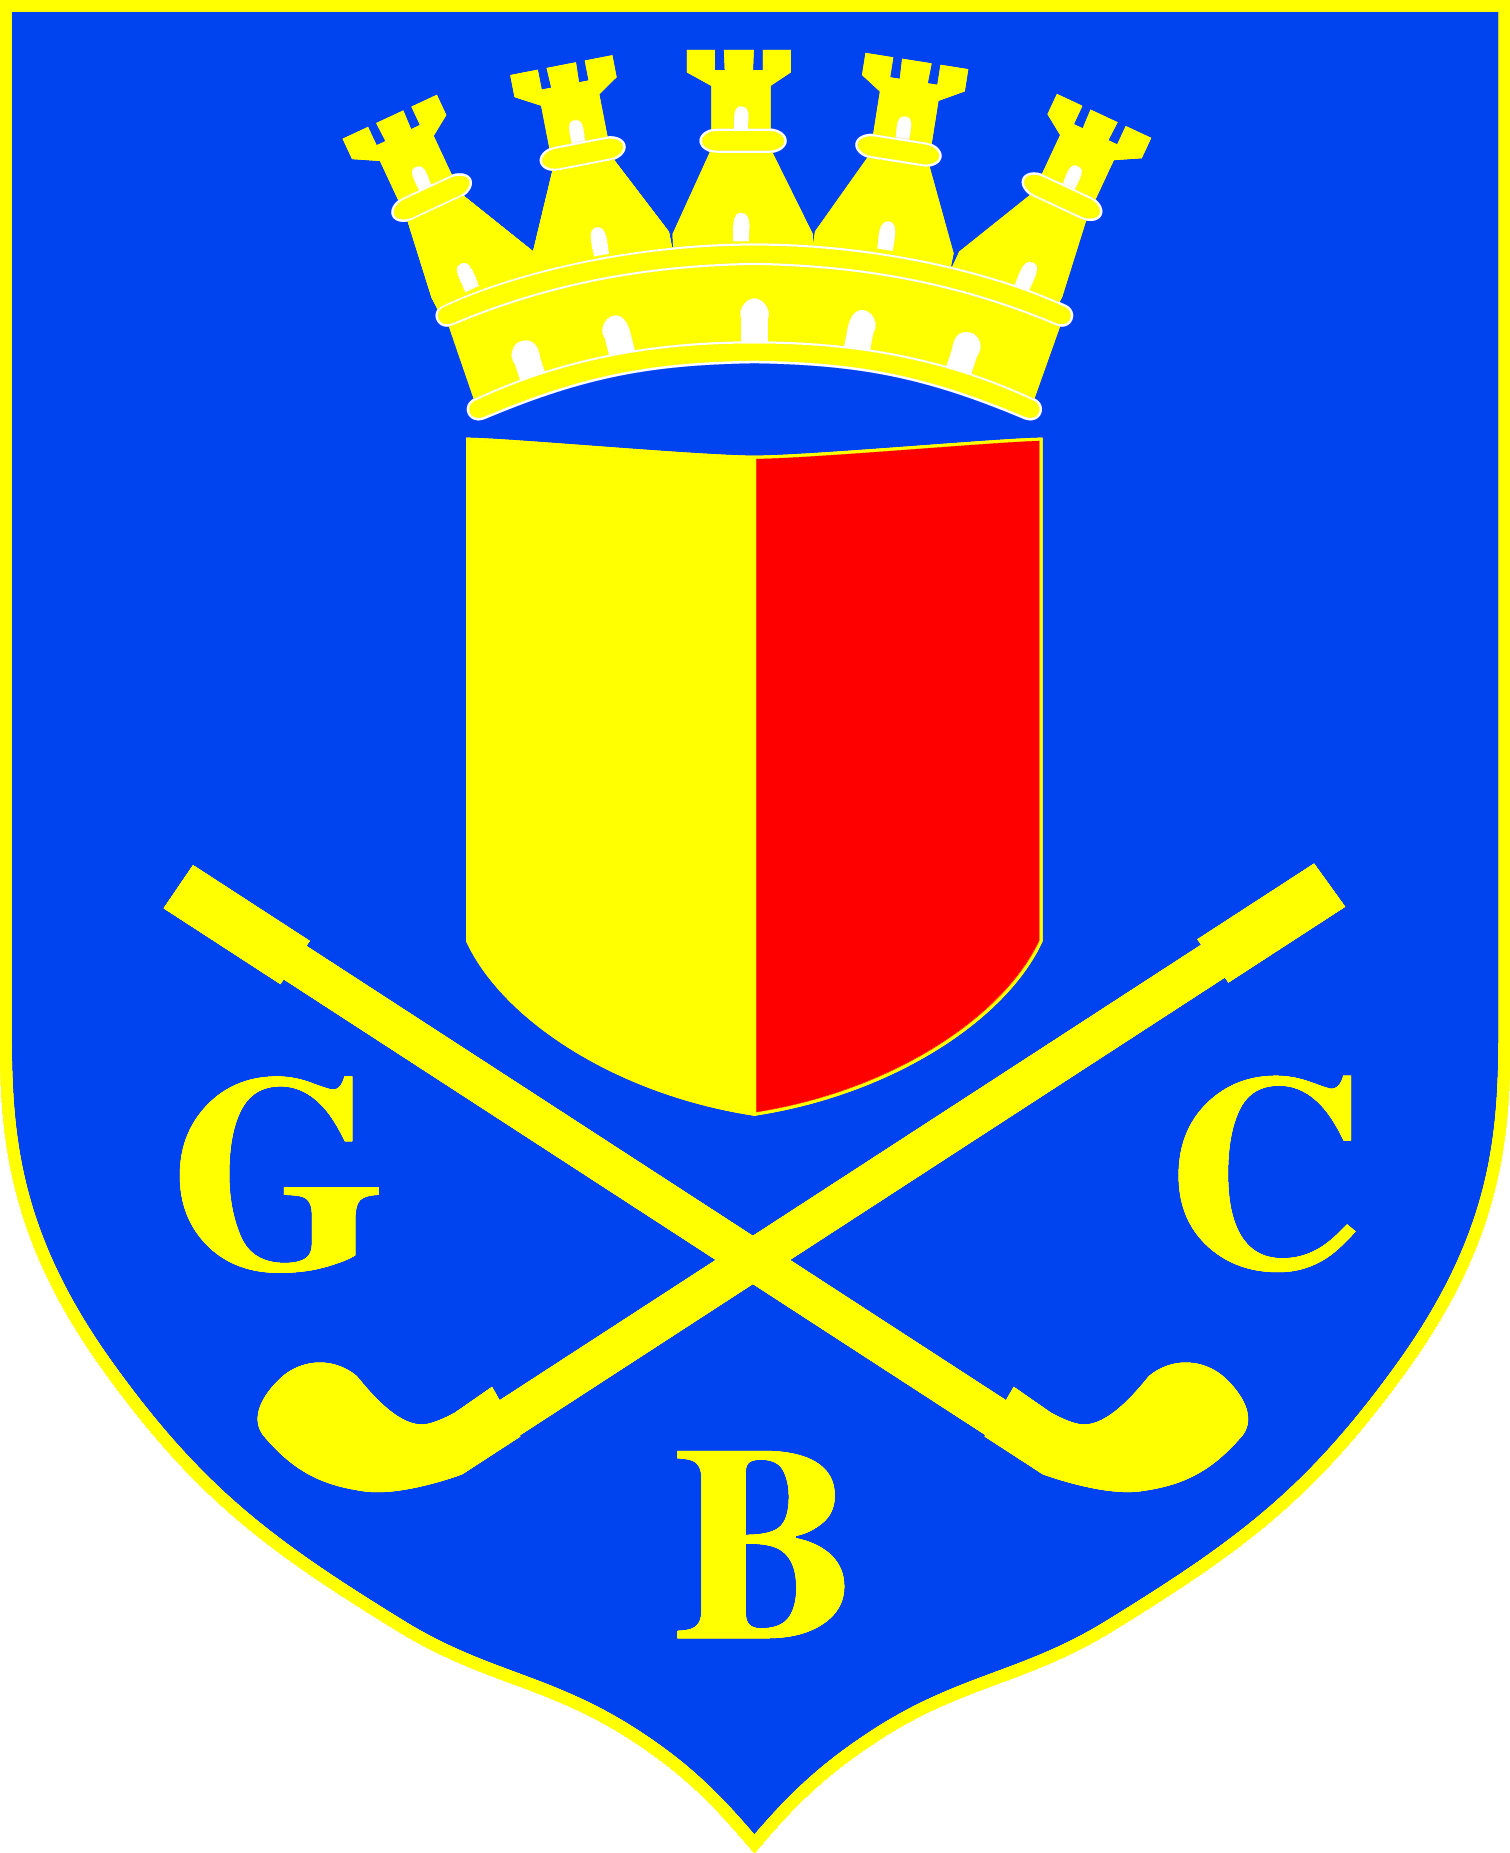 logo Golf Club Bergamo